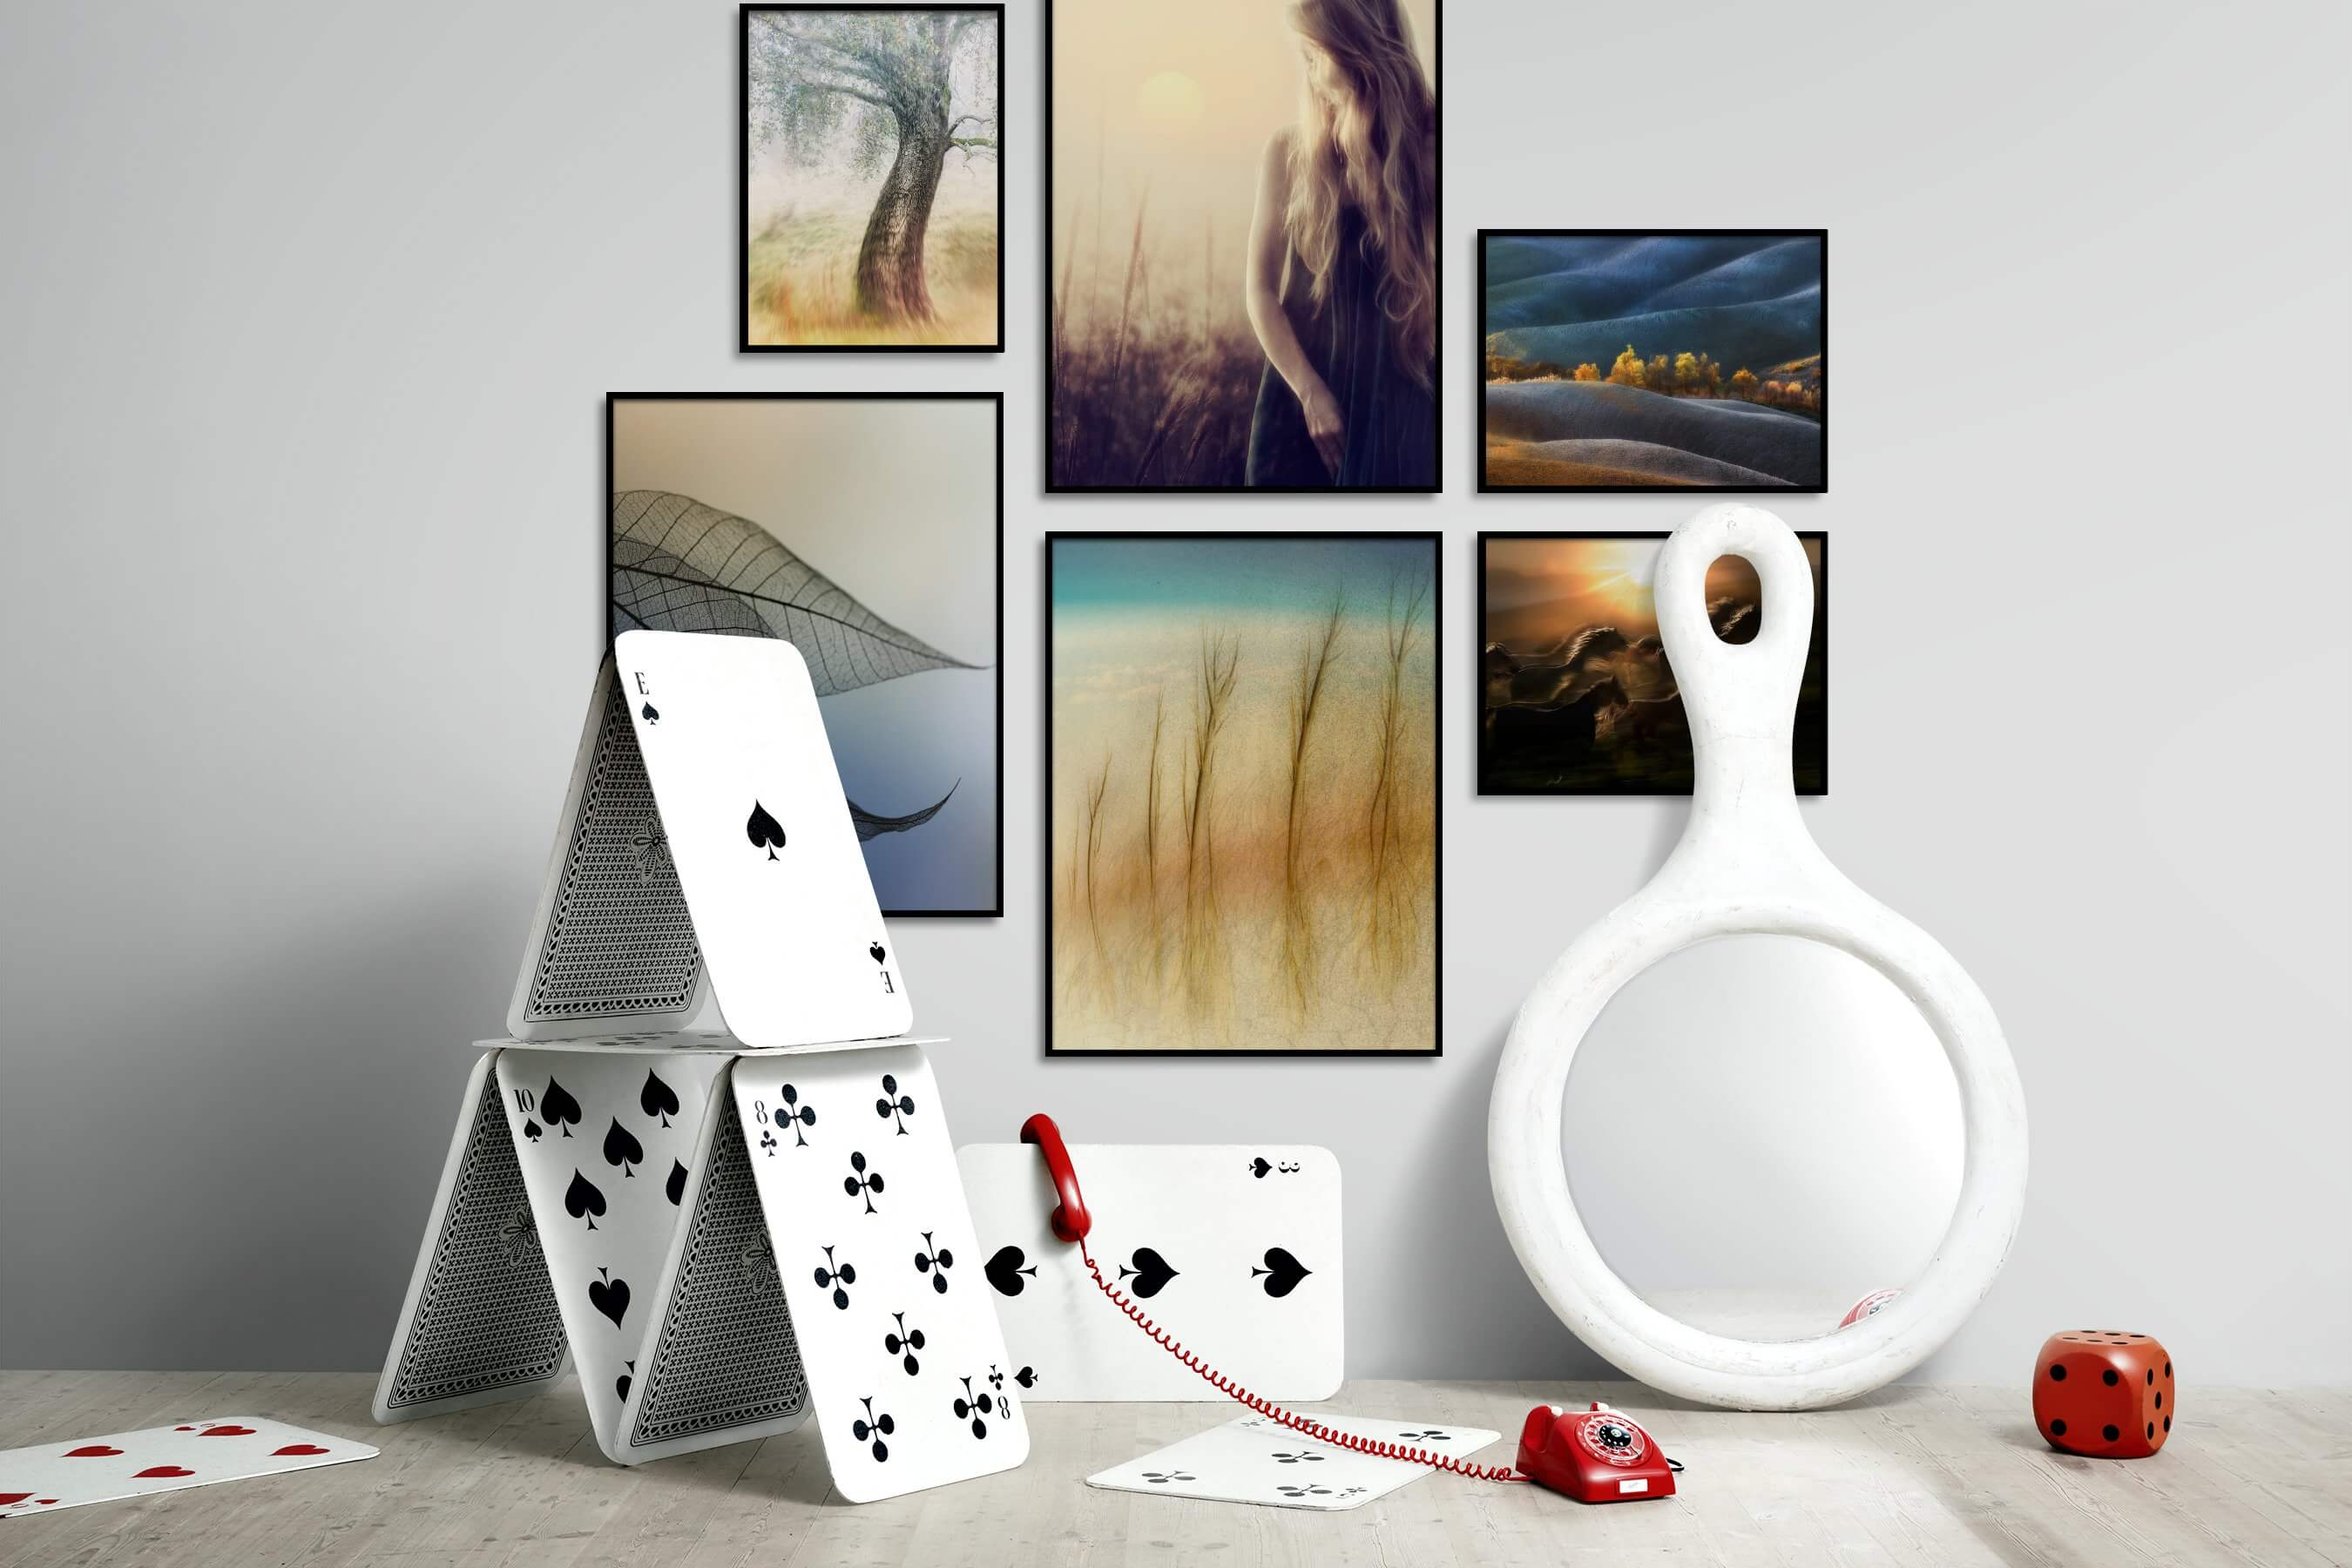 Gallery wall idea with six framed pictures arranged on a wall depicting Nature, Fashion & Beauty, For the Minimalist, Flowers & Plants, Mindfulness, For the Moderate, Country Life, and Animals